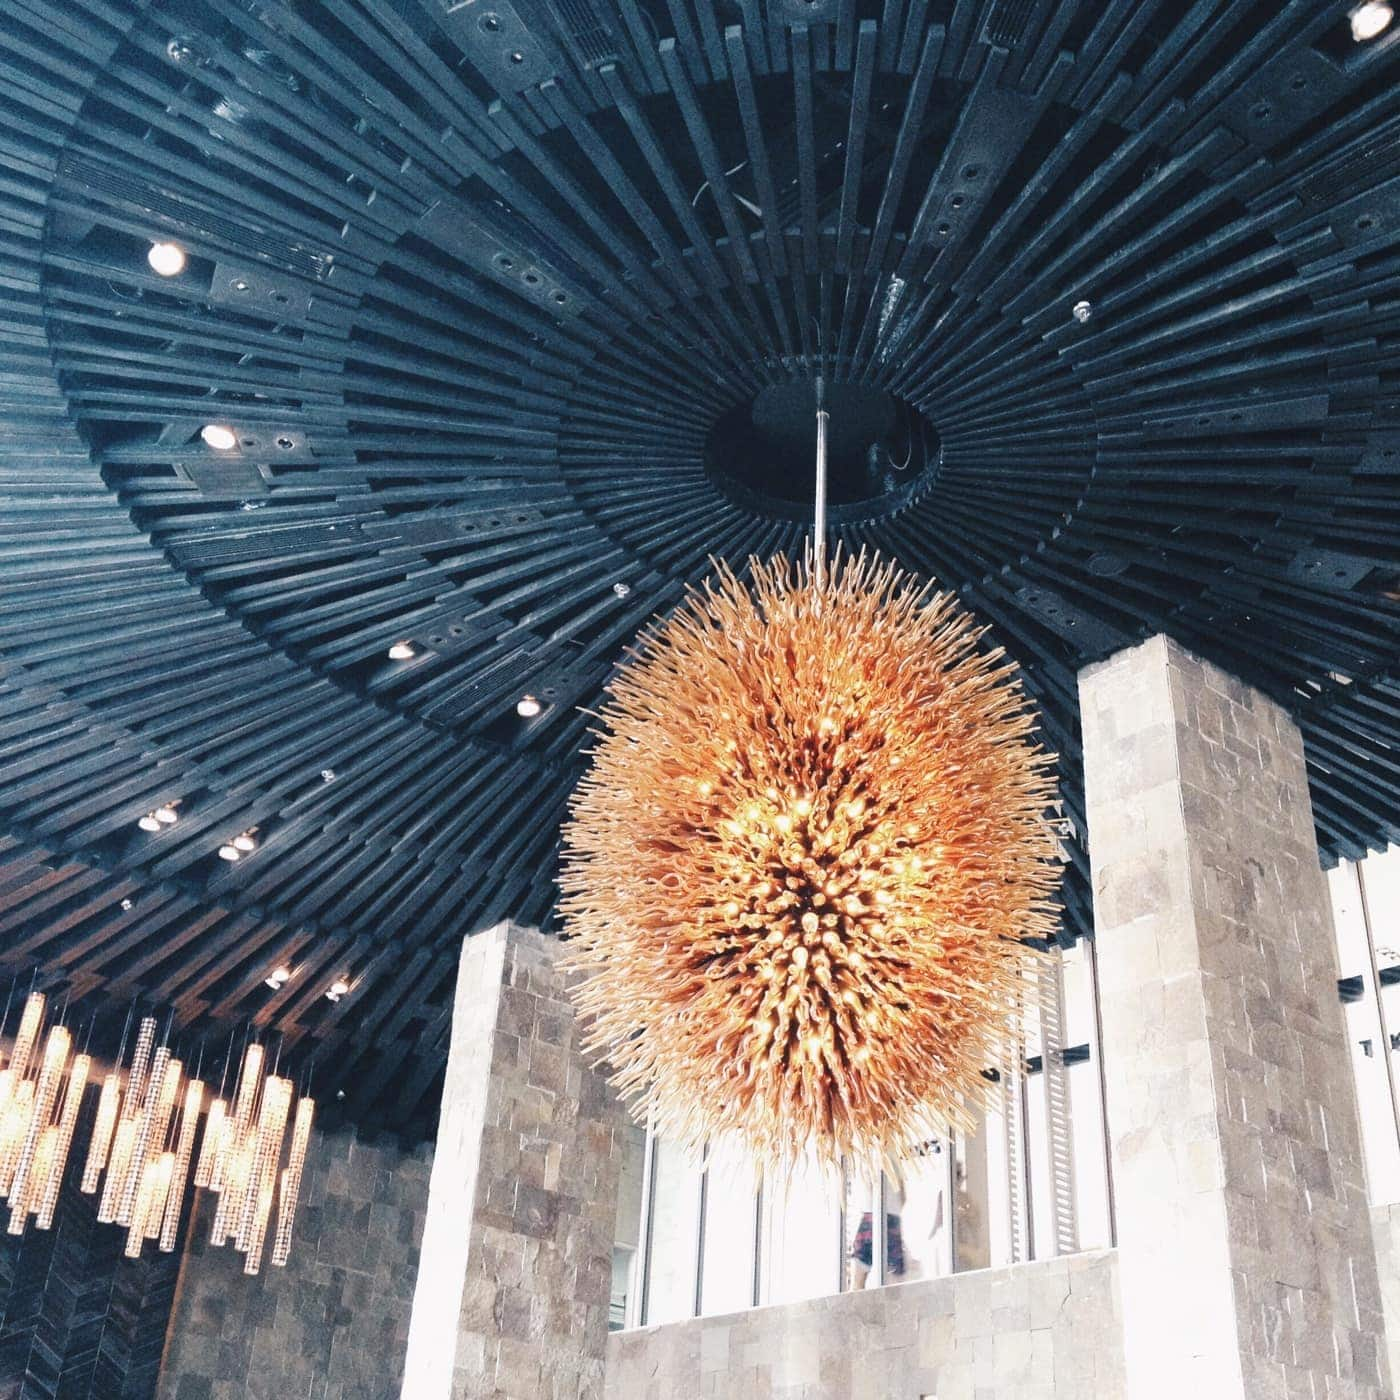 The Fire Restaurant at W Hotel Seminyak